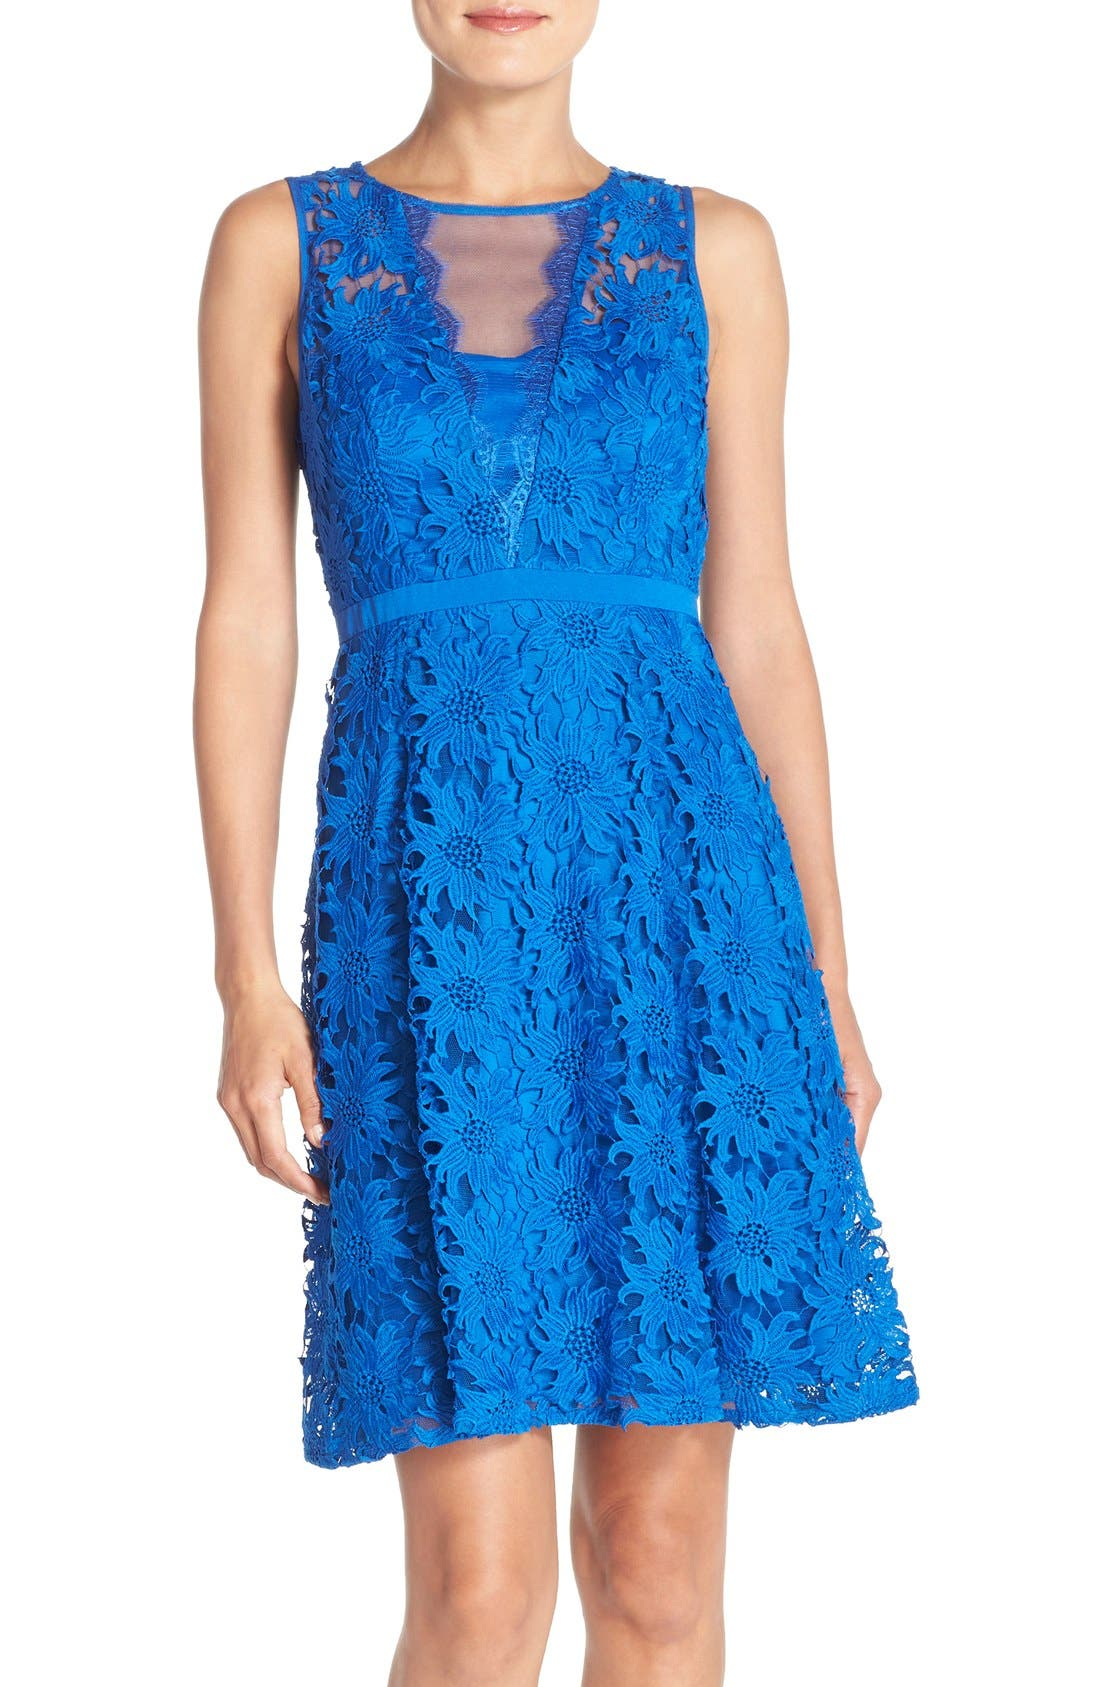 ADRIANNA PAPELL Illusion Floral Lace Fit & Flare Dress, Main, color, 433